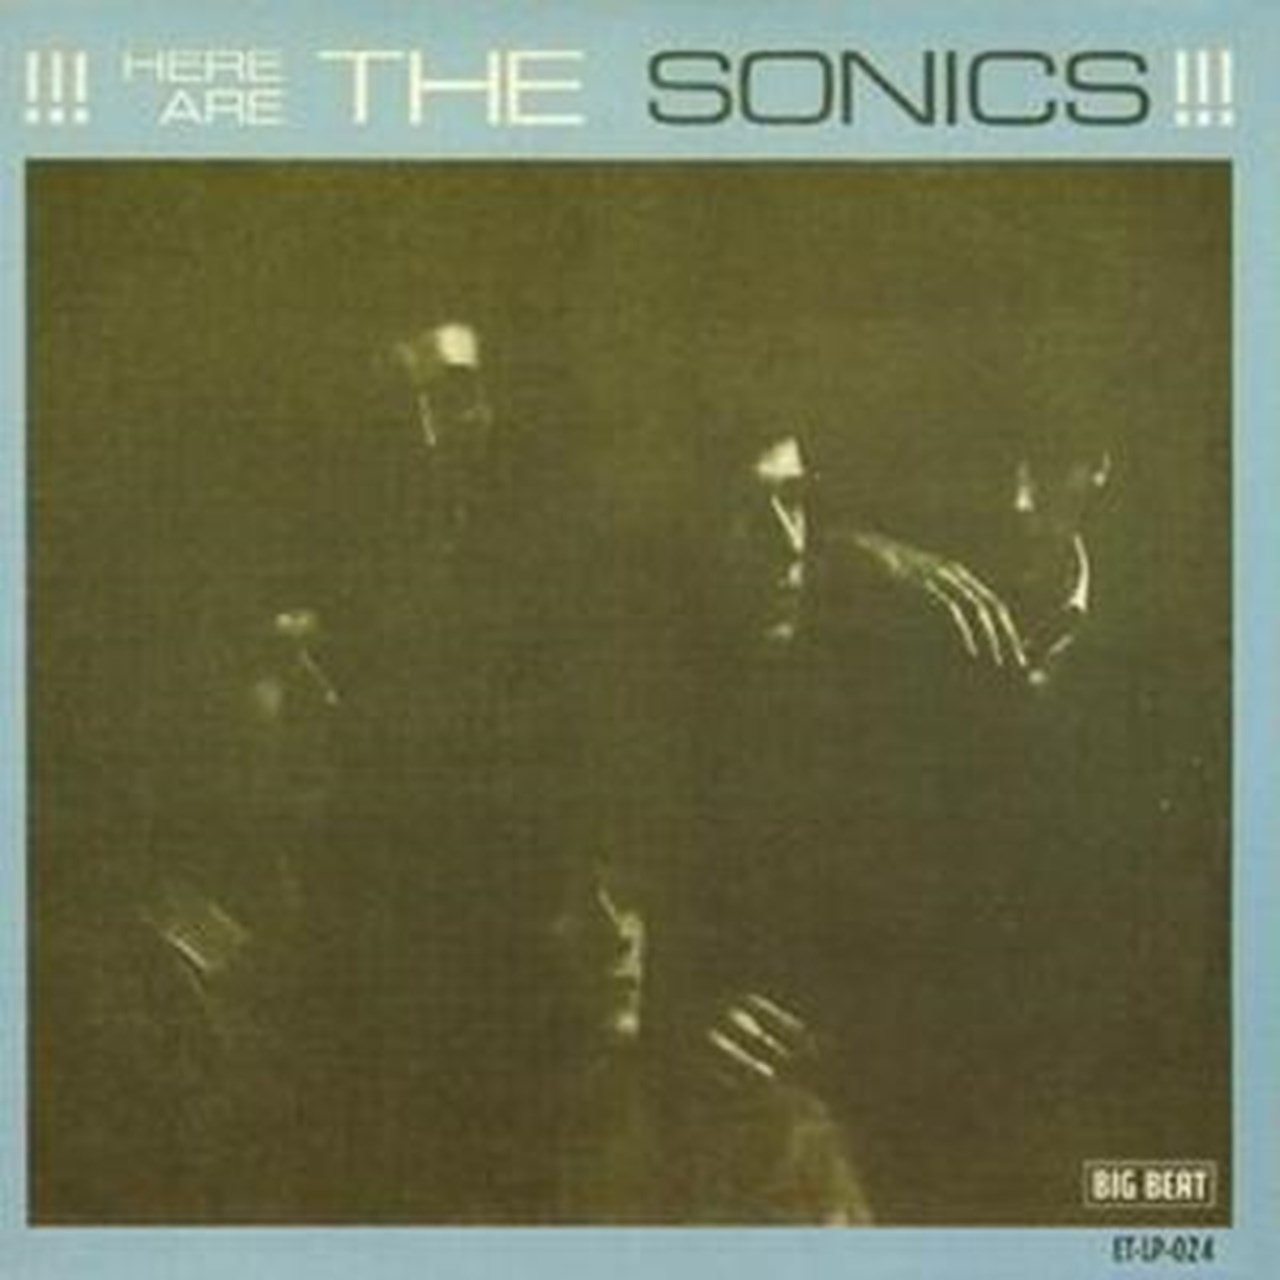 Here Are the Sonics!!! - 1